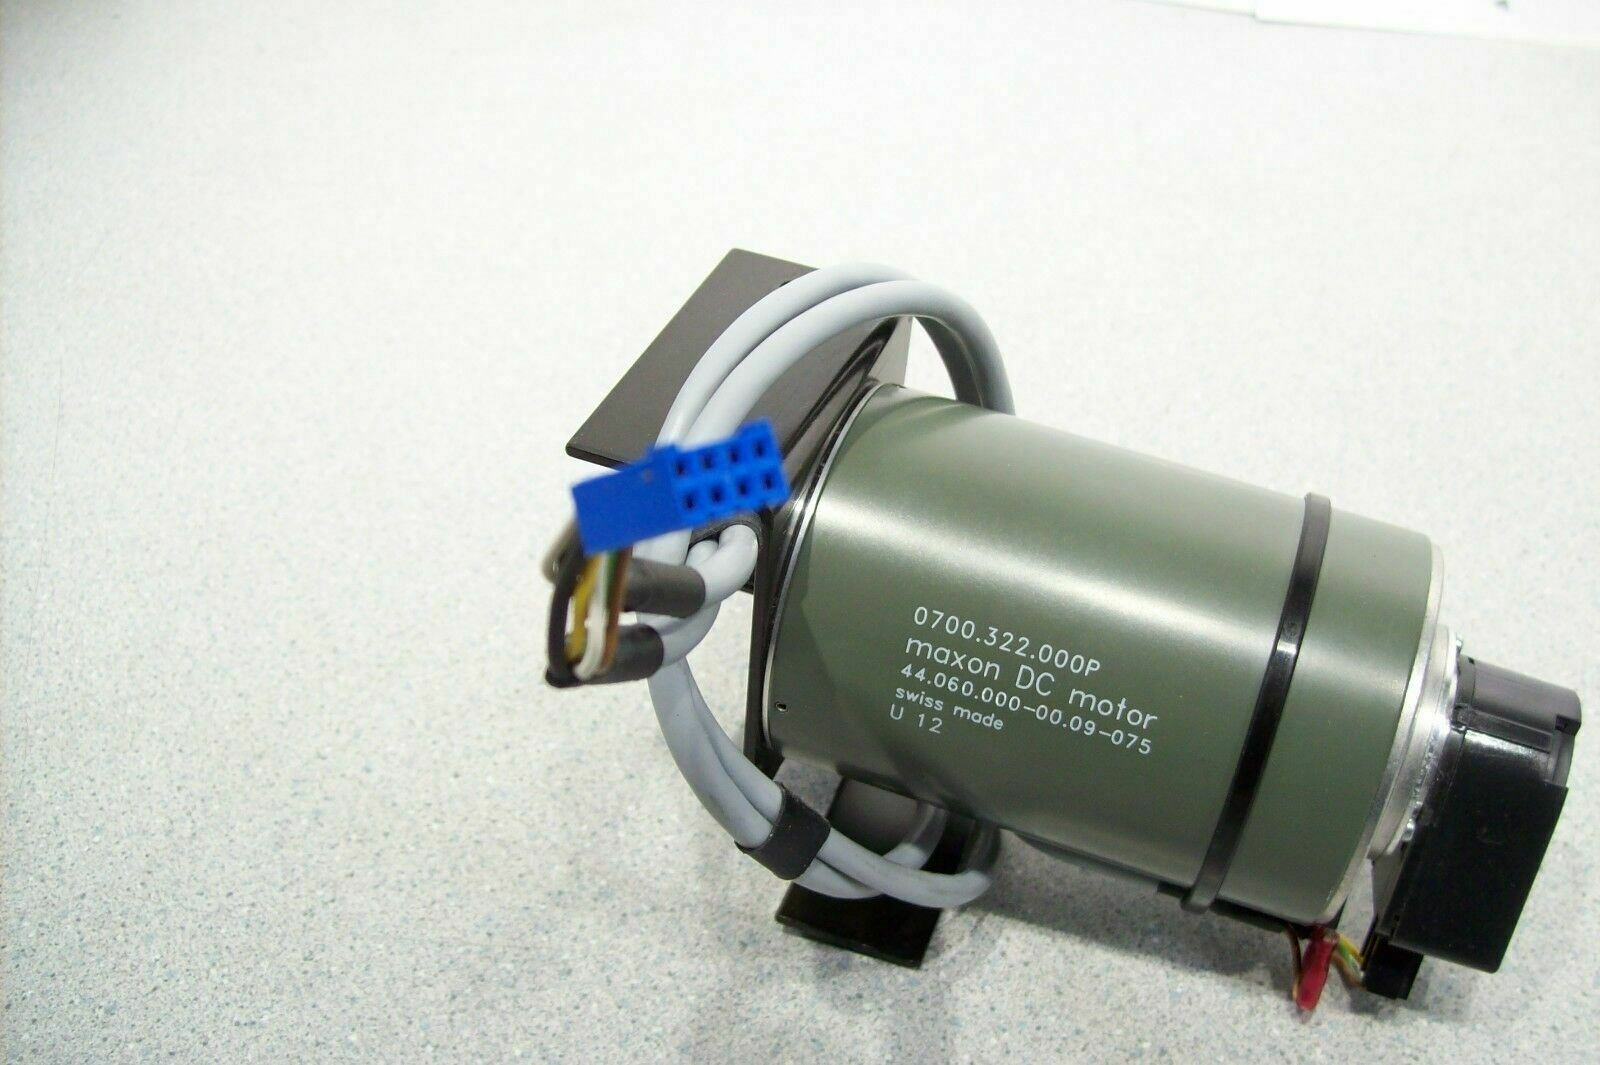 Maxon DC Motor 44.060.000-00.09-075 with HP HEDM-5500 B11 Optical Encoder